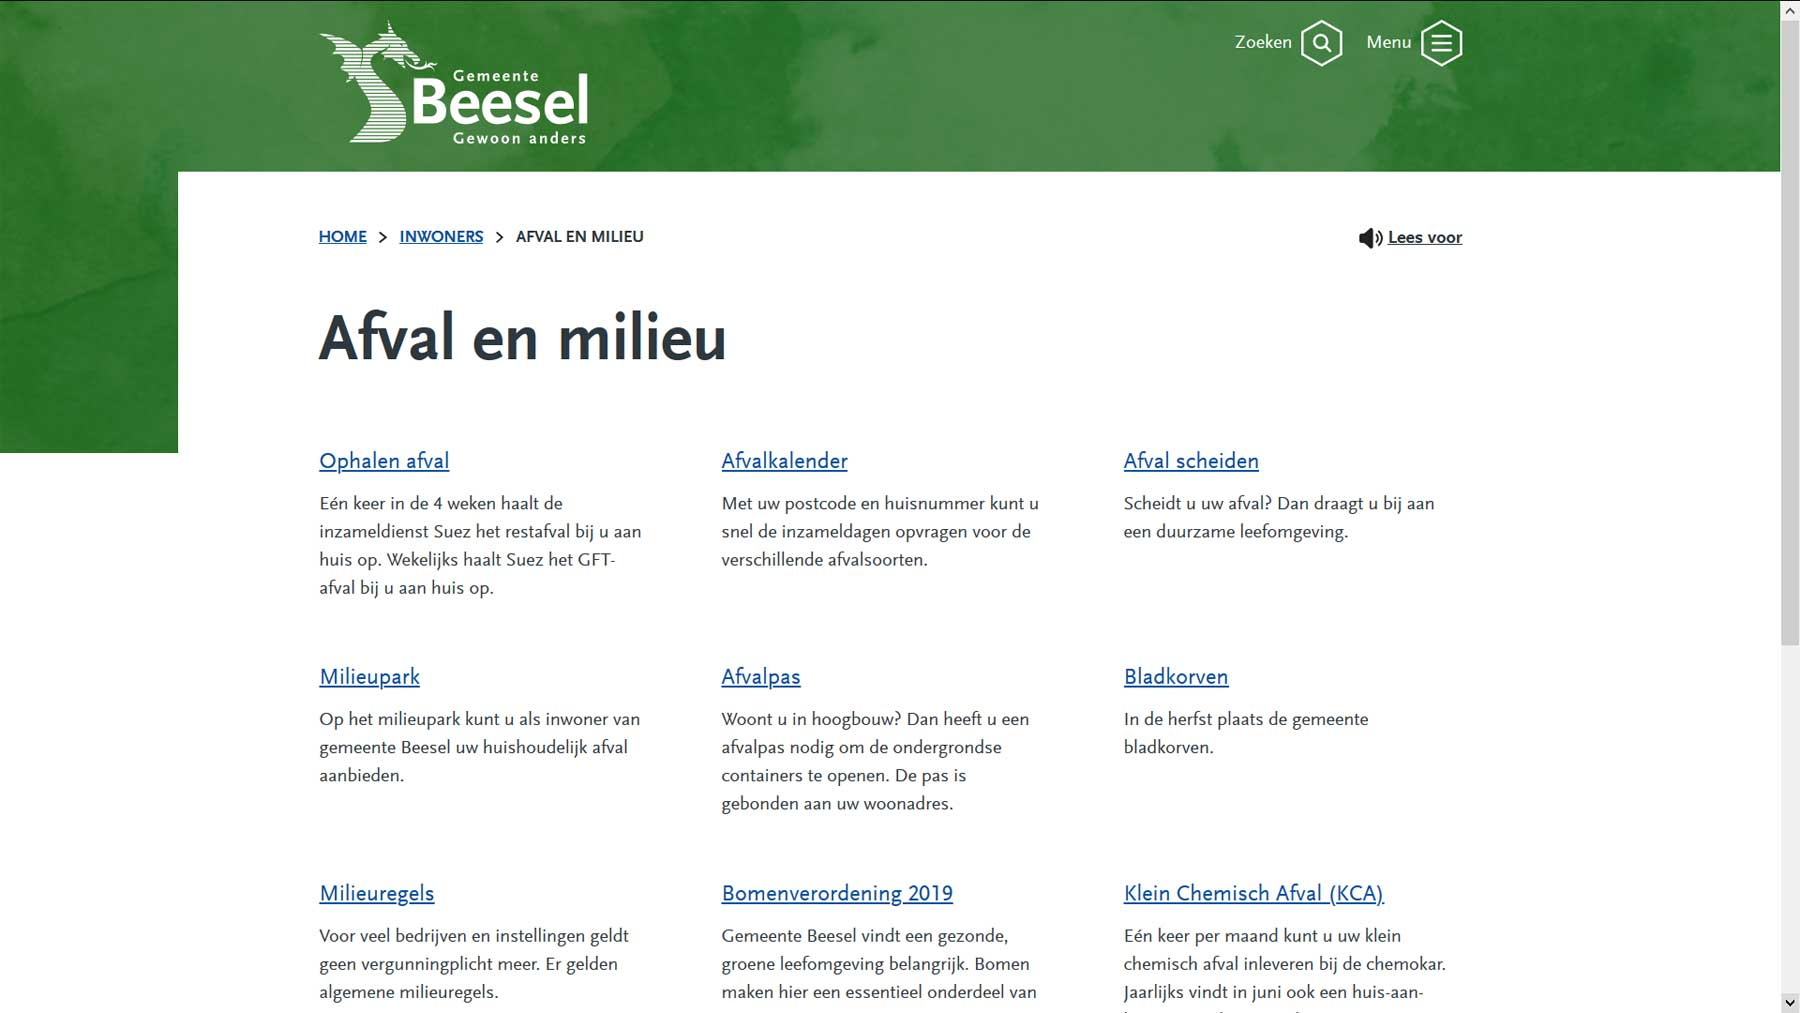 Thema indeling website Beesel